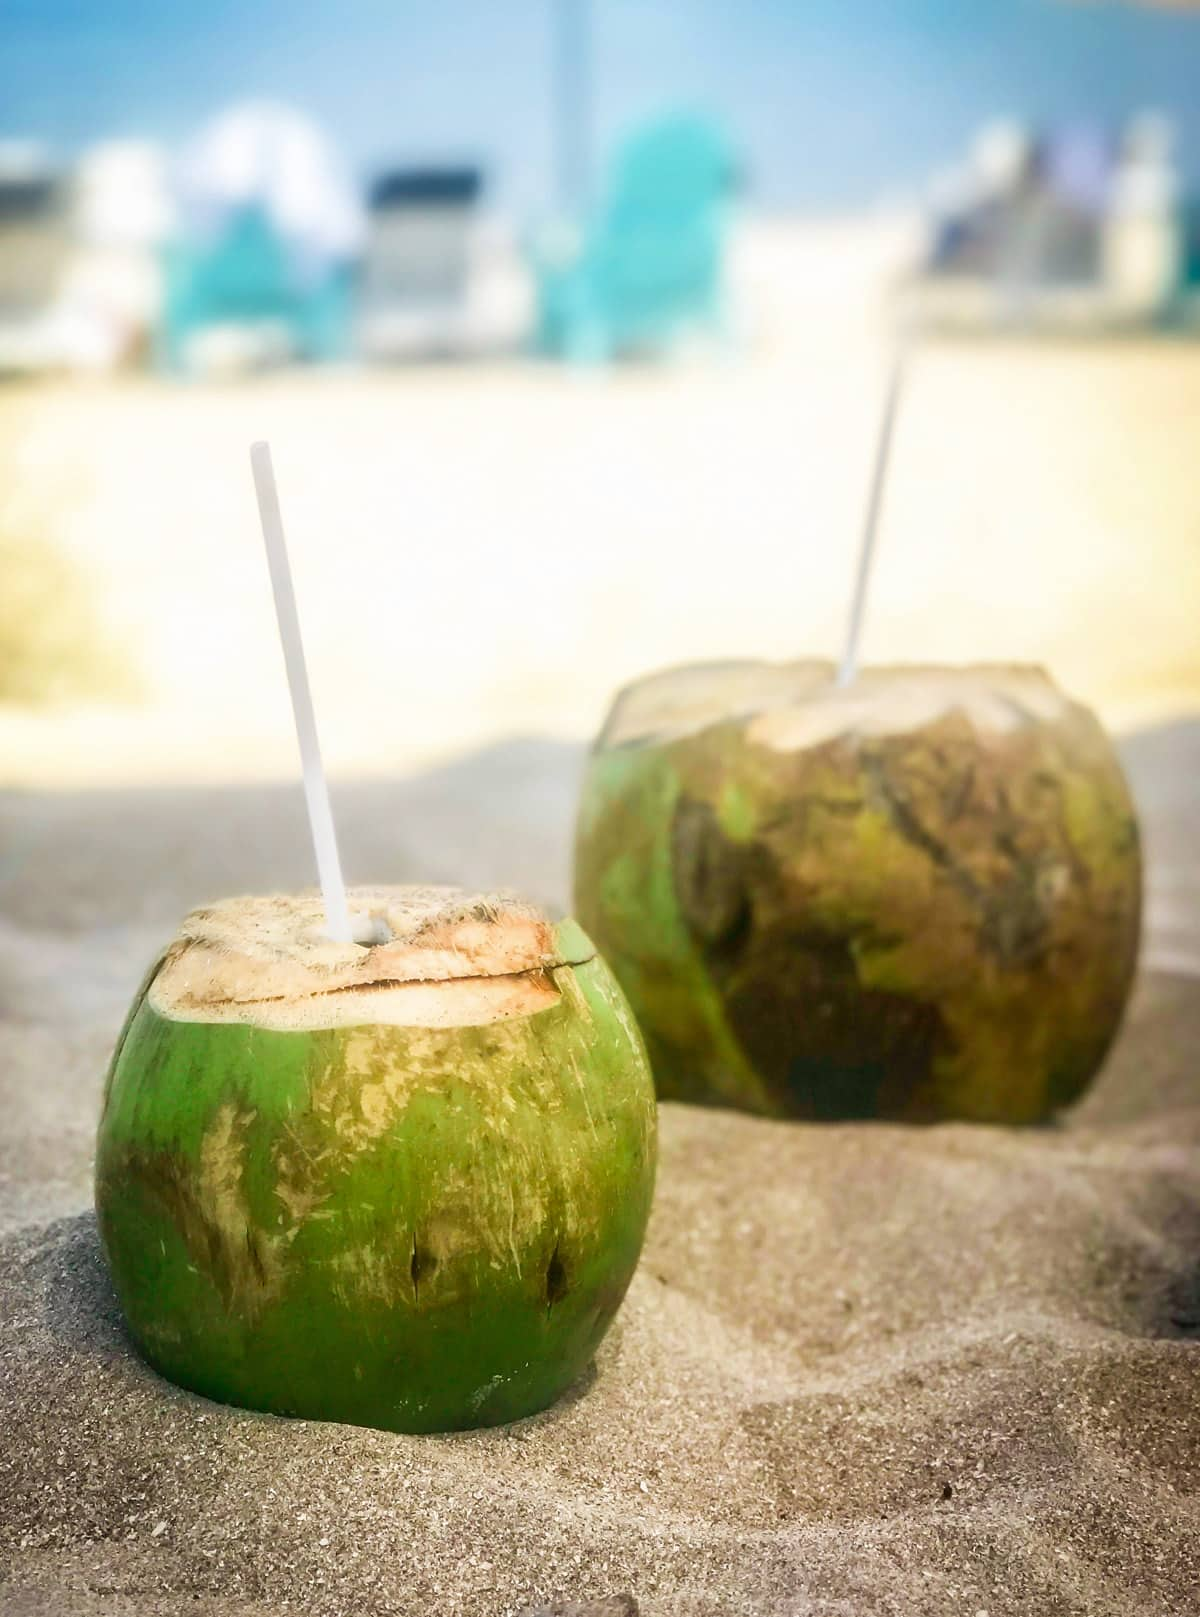 Fresh coconuts on the beach bar at Villa del Palmar at the Islands of Loreto. Looking for the BEST vacation destination to treat yourself? From a quiet getaway to soak up the sun or to enjoy your honeymoon, the Villa del Palmar at the Islands of Loreto, Mexico is one of those hidden gems you need to visit for yourself. This unique, affordable resort is packed with fun activities such as golfing, kayaking, paddle boarding, snorkeling, scuba diving, yoga, dancing, whale watching, and fishing. Whatever you're looking for in your upcoming getaway, Villa del Palmar offers it!